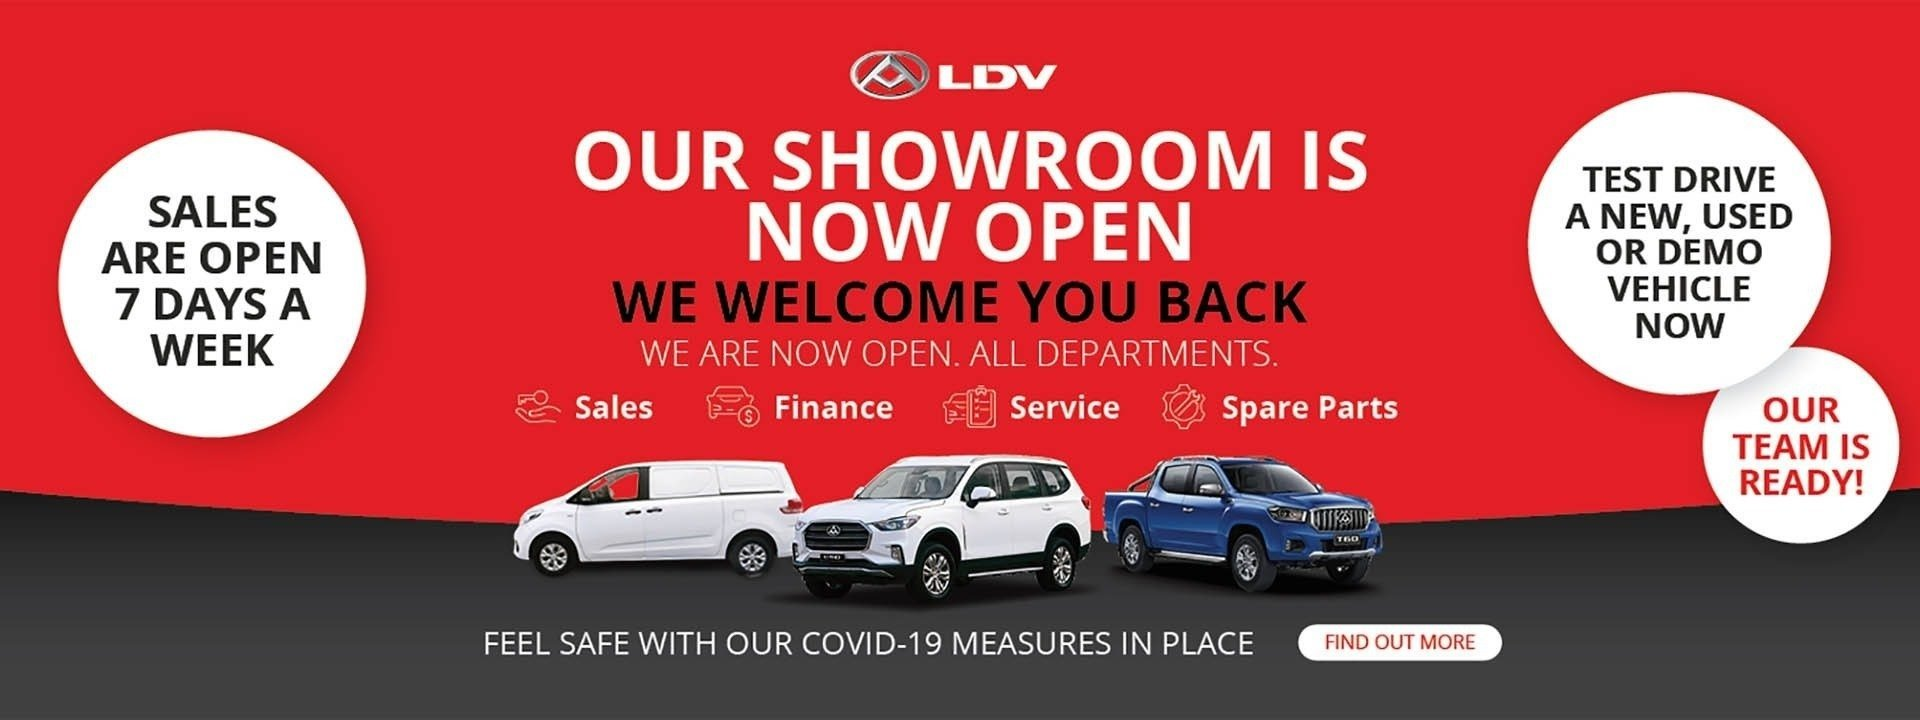 Our Showroom is Now Open - Werribee LDV